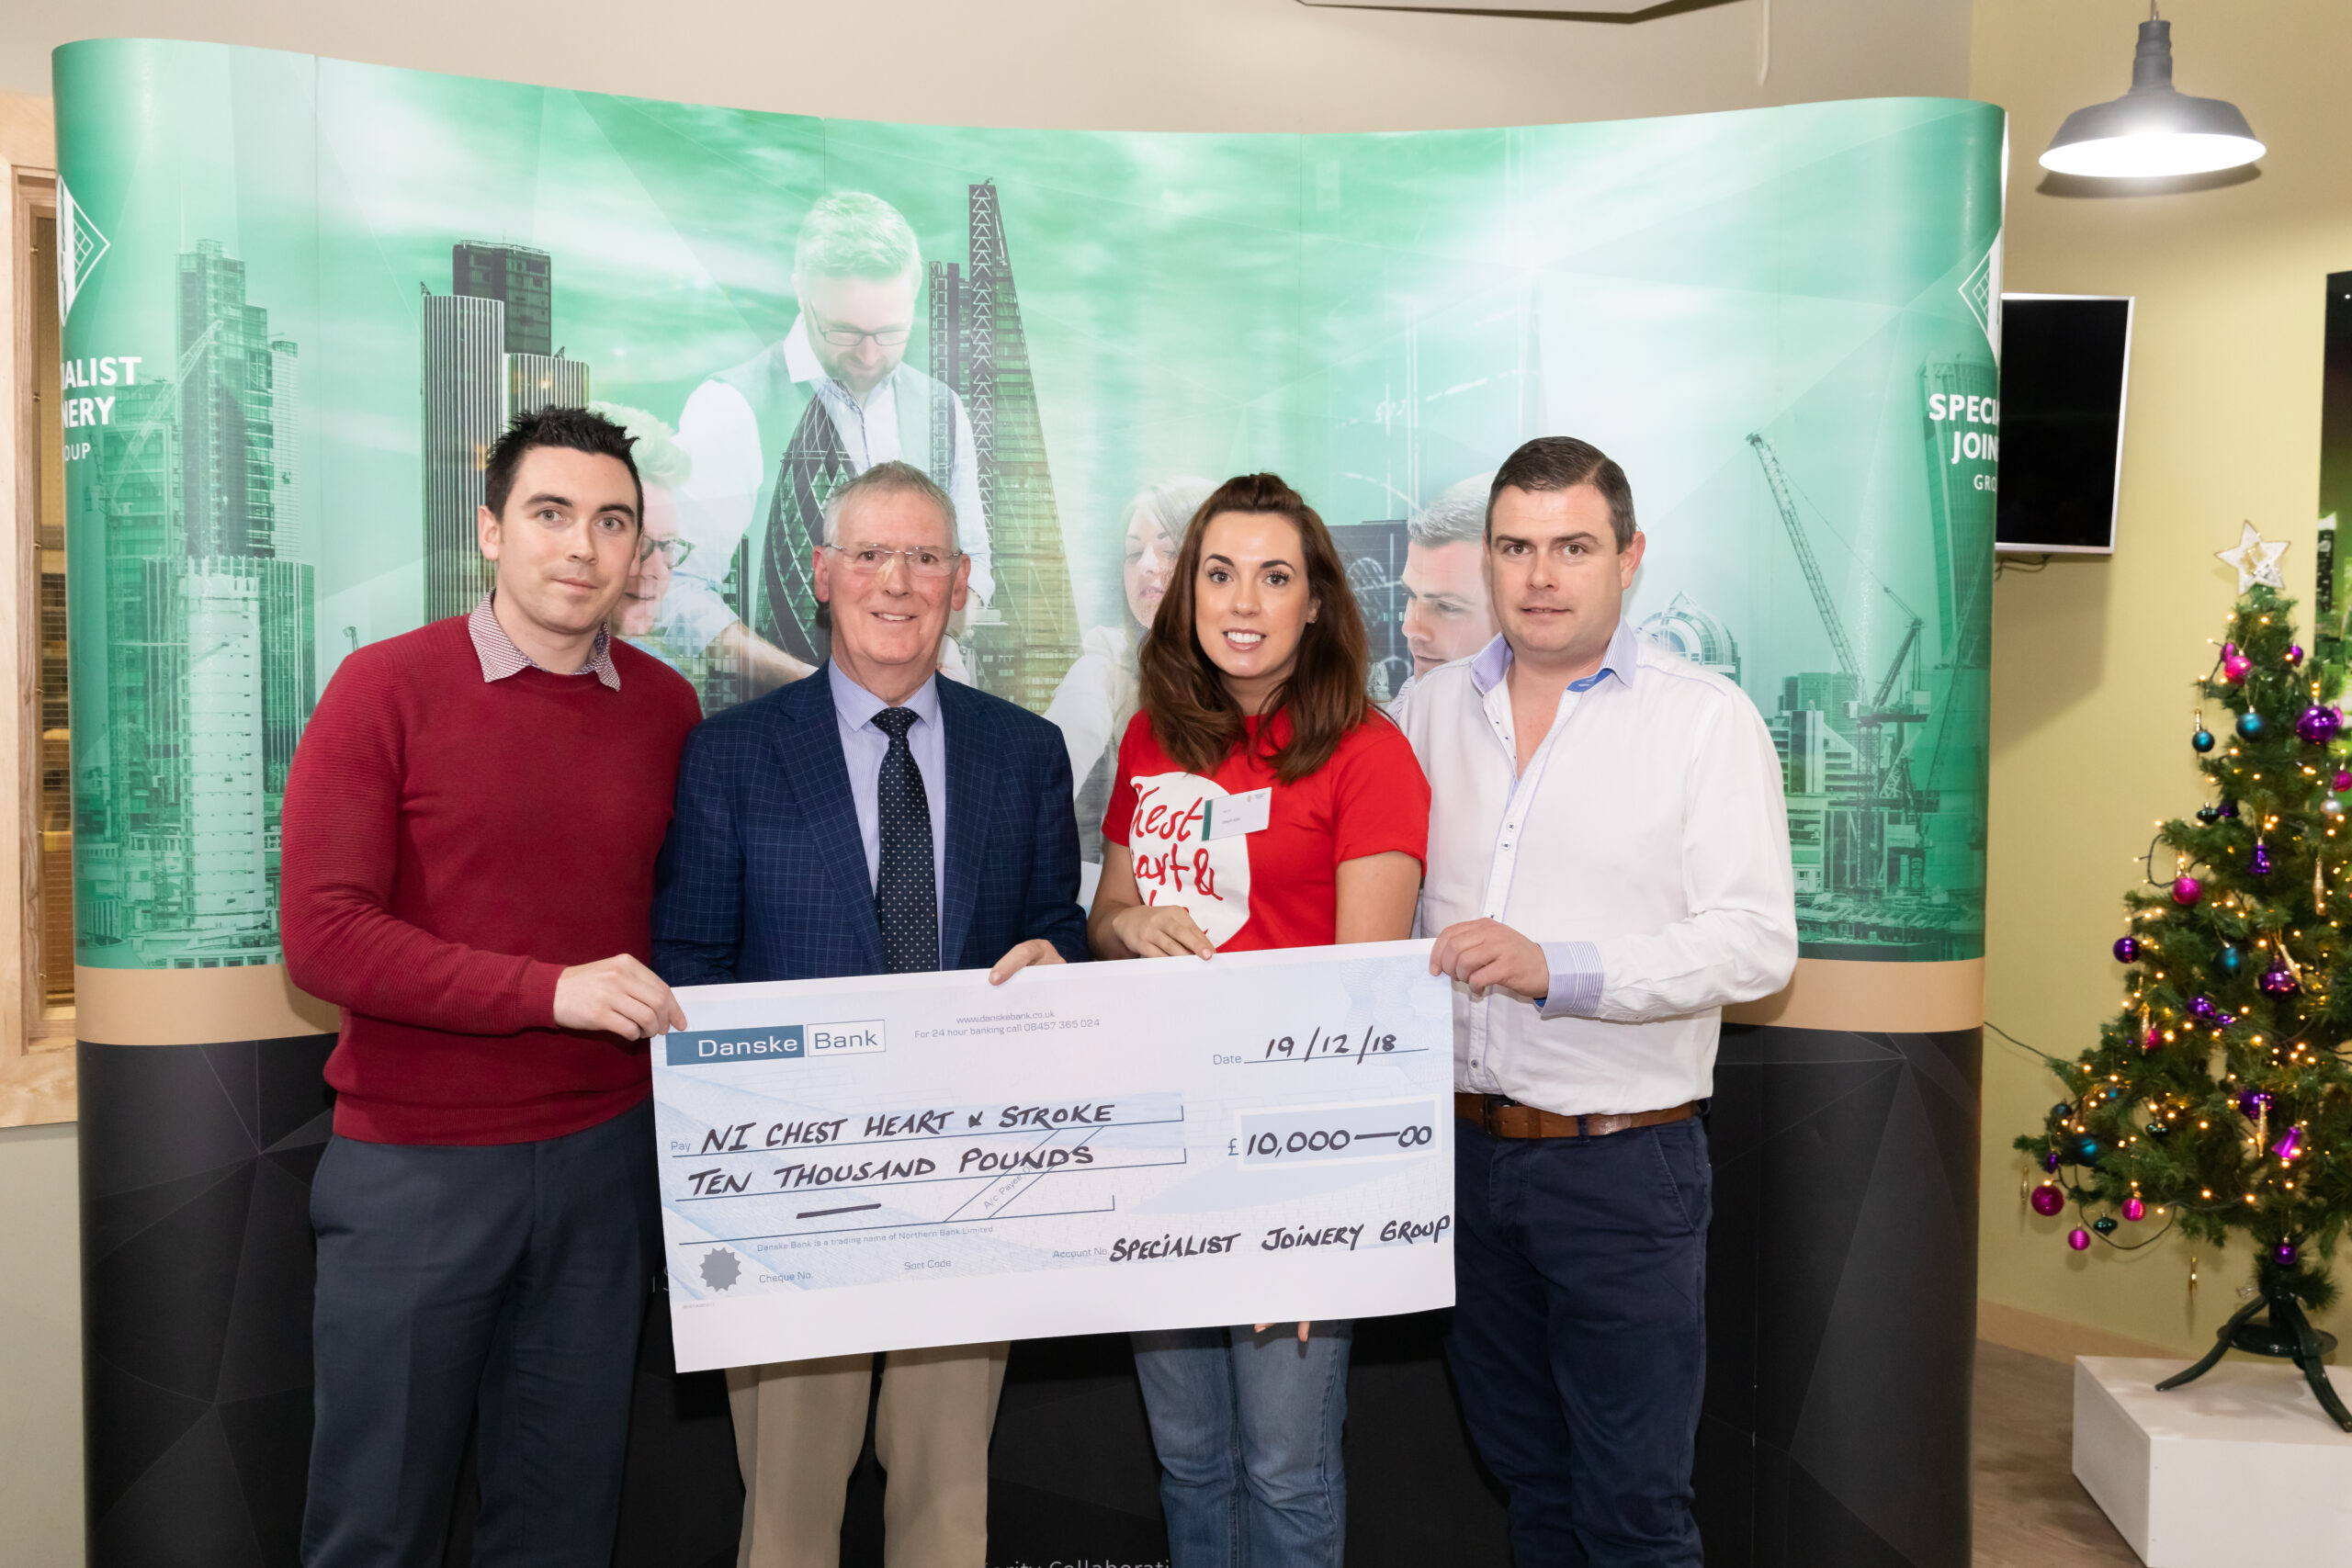 Steph Ellis from NI Chest Heart & Stroke pictured with Dermot, John Bosco and Ciaran O'Hagan